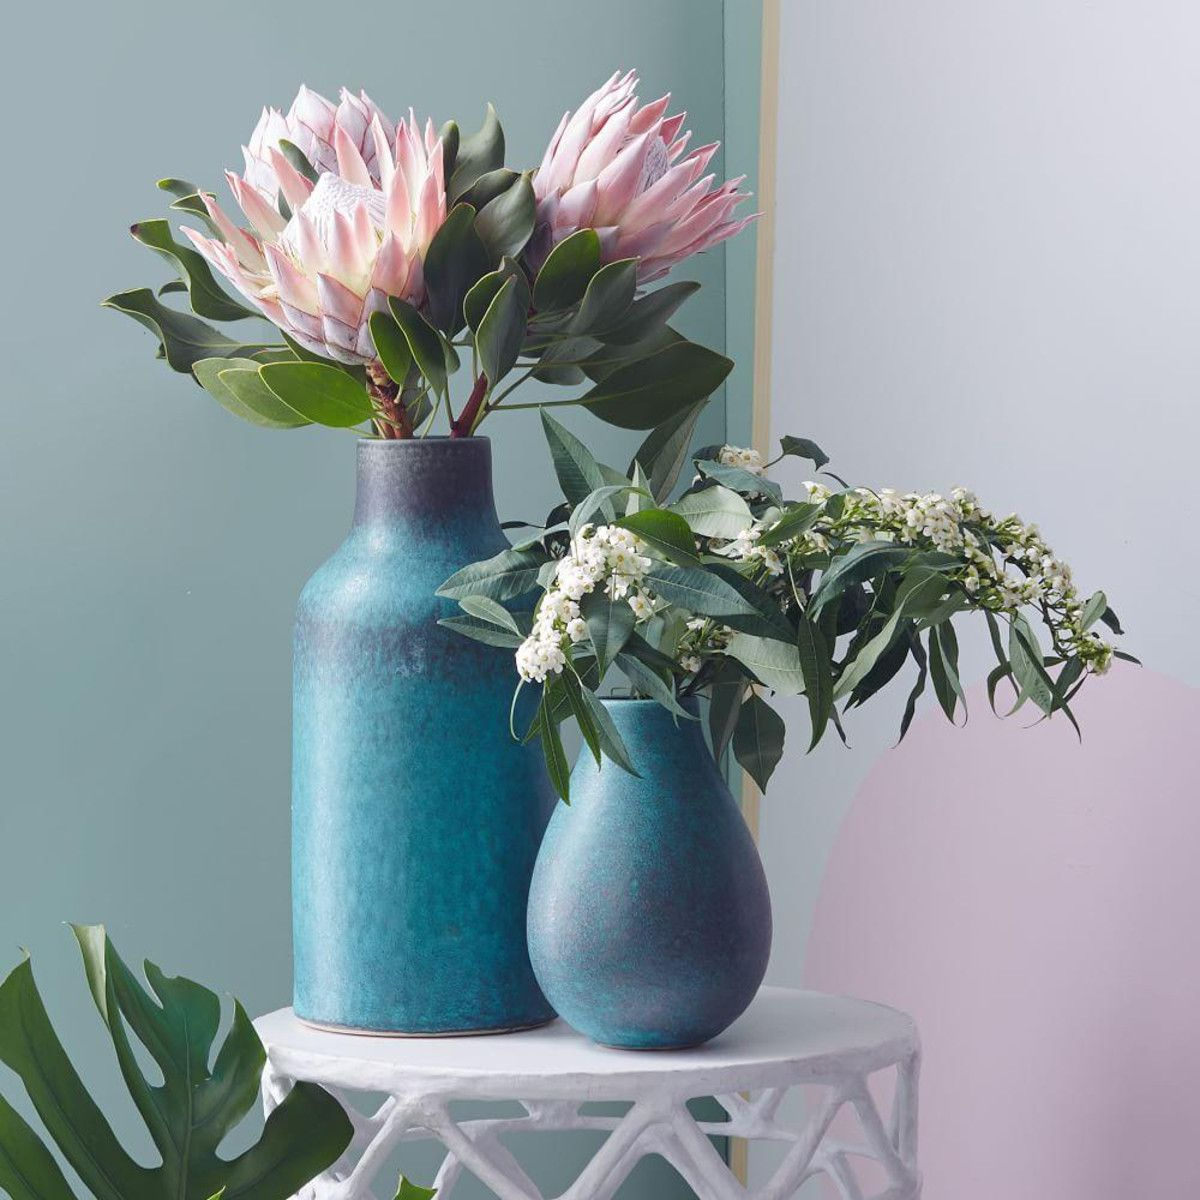 Made from ceramic earthenware with a slightly glossy finish, our rustic vases add a welcome pop of colour to any mantel, shelf or tablescape. Colour variation is pretty common as a result of the unique glazing process — so no two vases are alike.